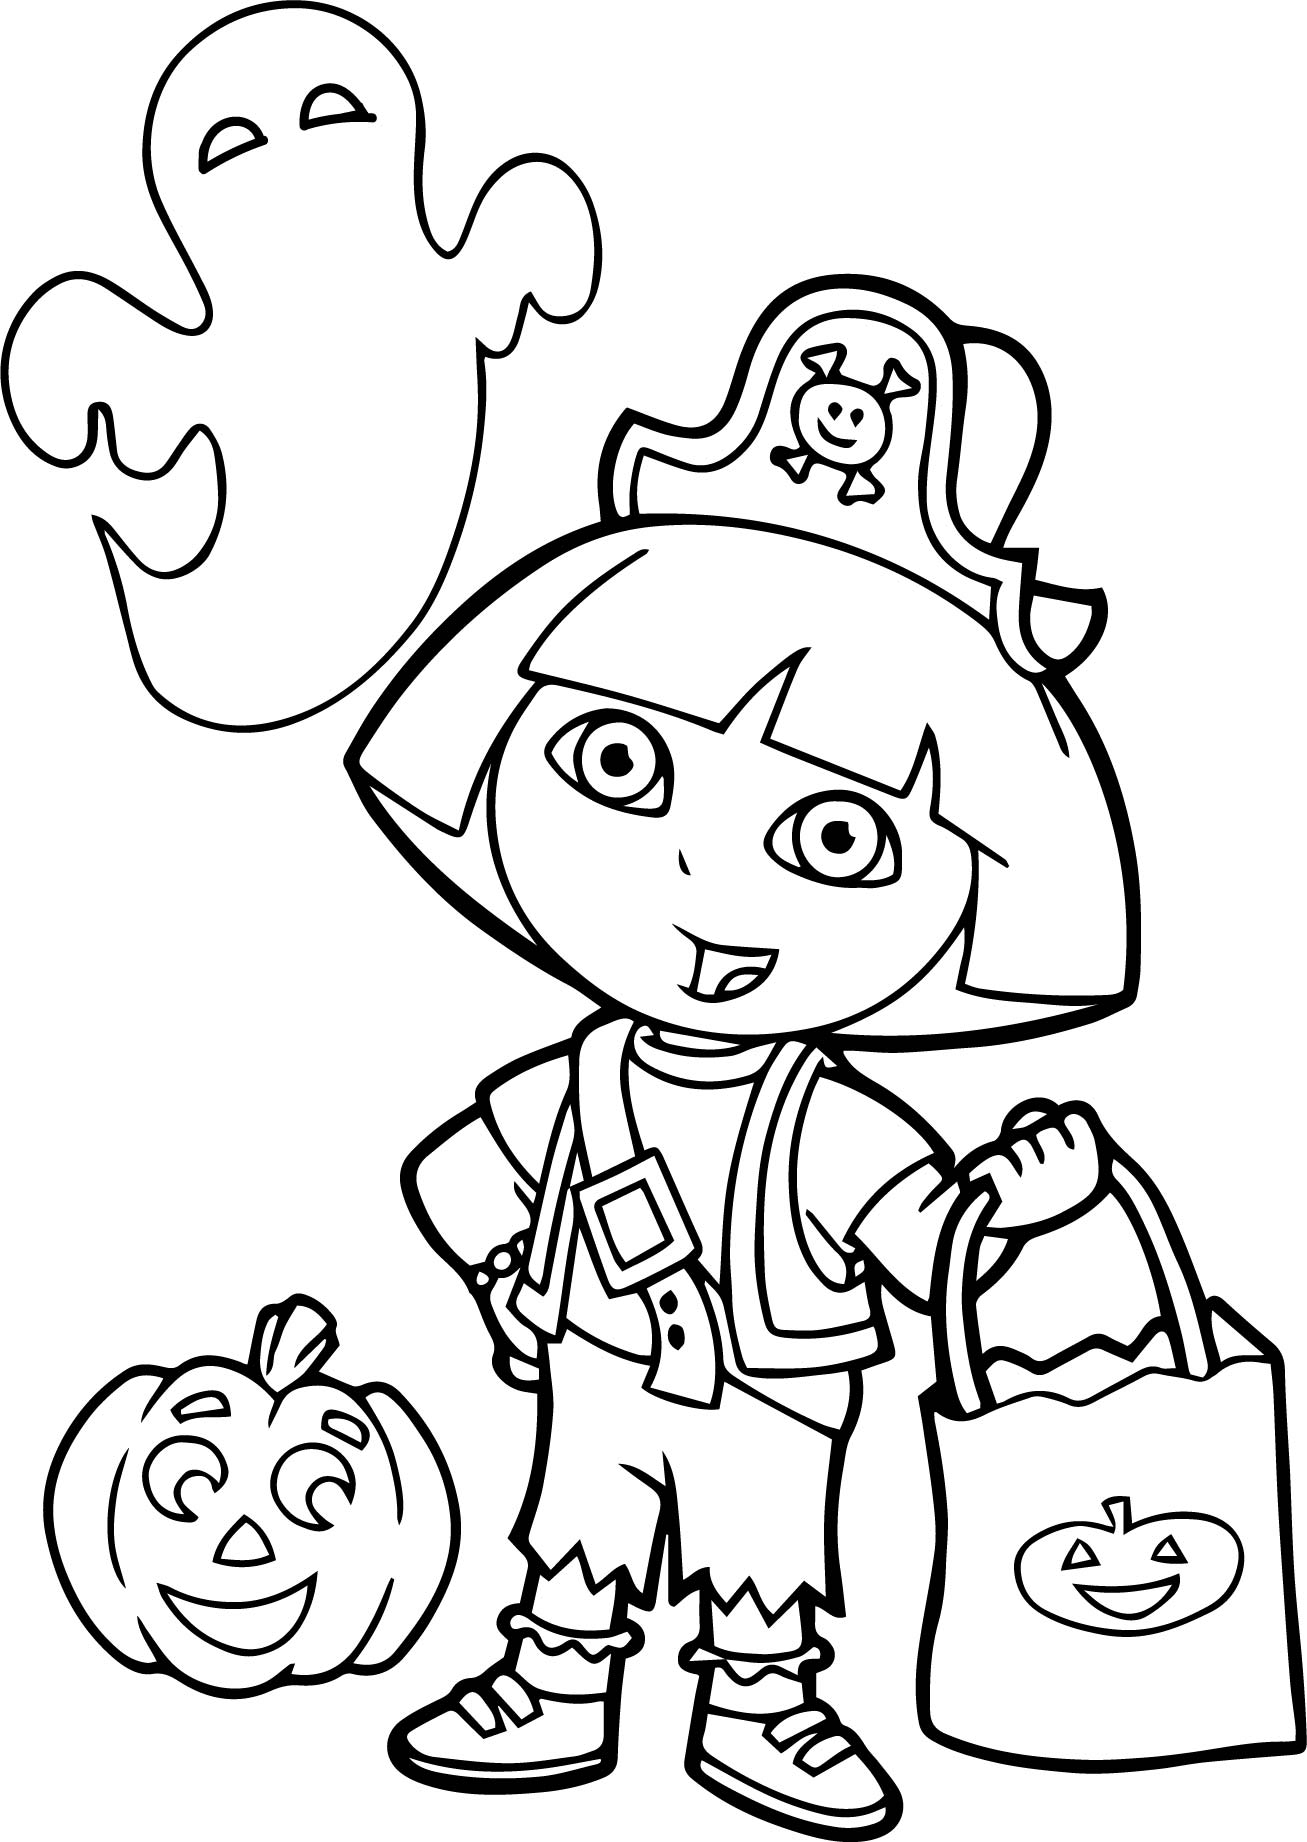 Free dora the explorer halloween coloring pages ~ Dora Halloween Coloring Page | Wecoloringpage.com